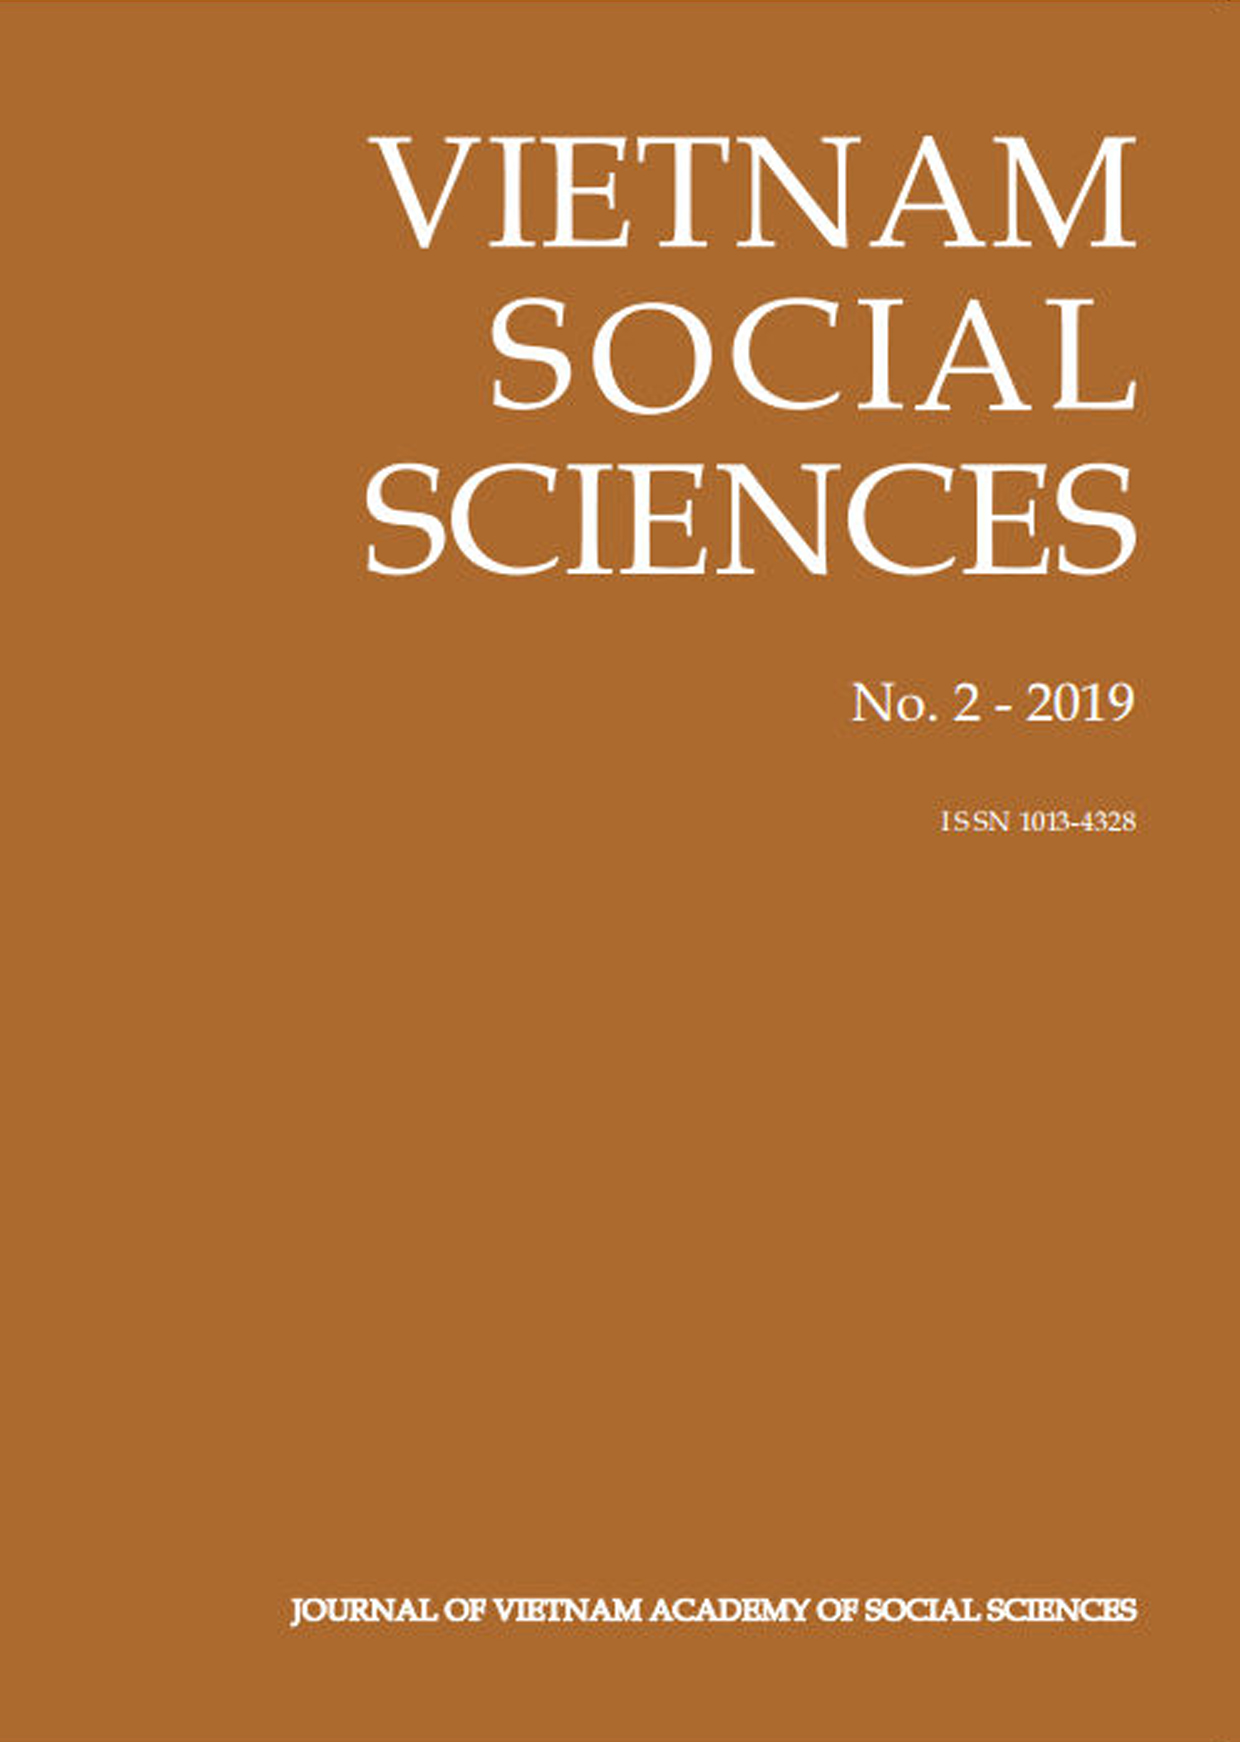 Vietnam Social Sciences. No. 2 - 2019